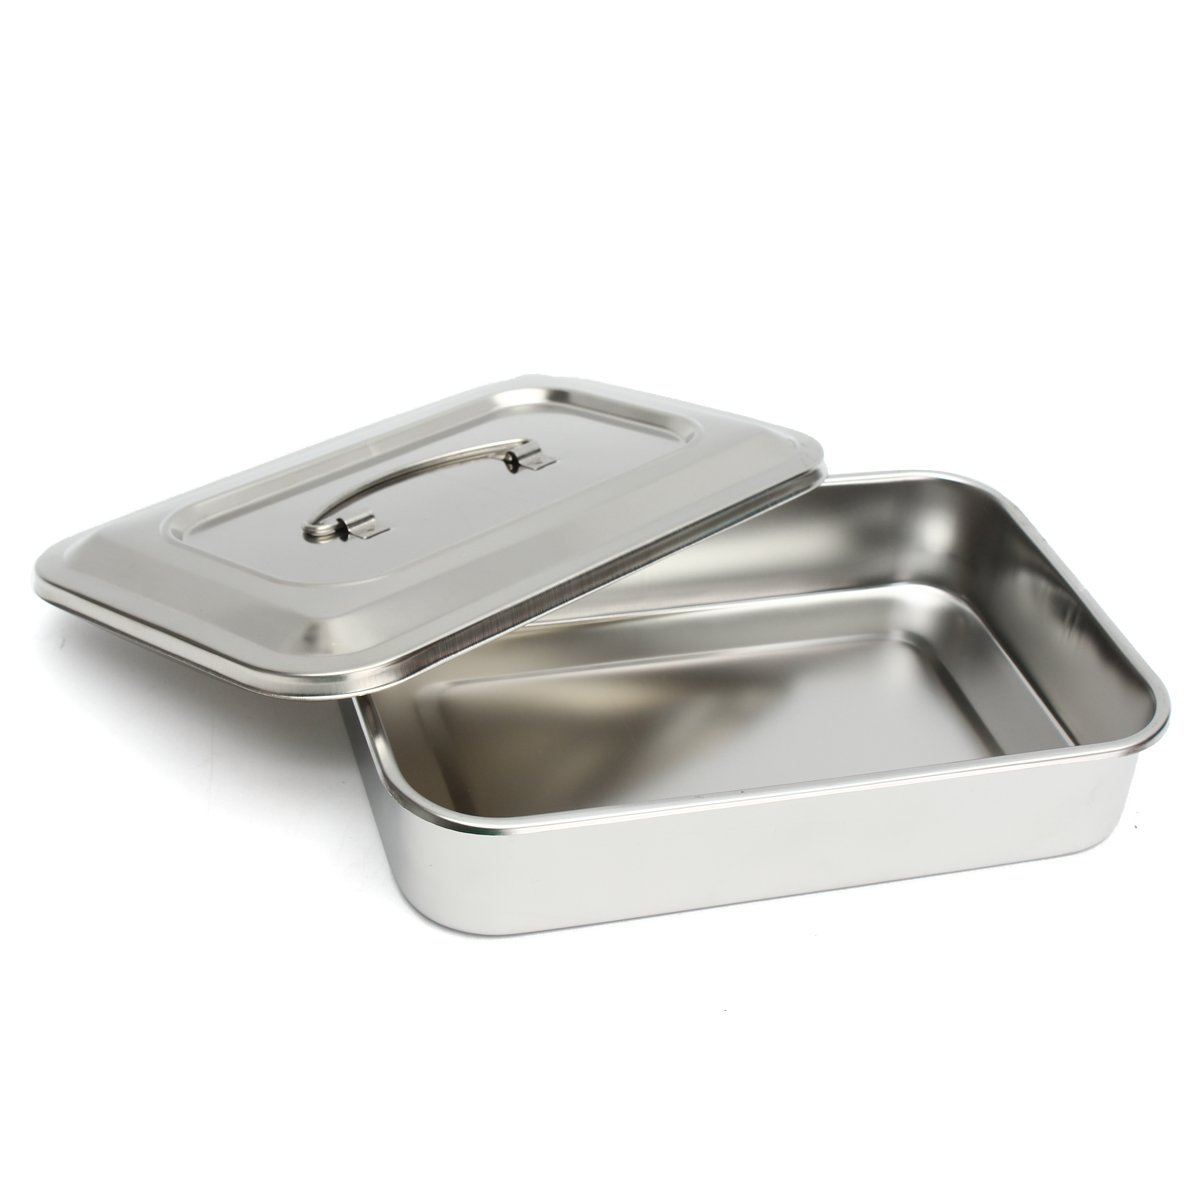 DIY 1 x Stainless Steel Instrument Tray with Lid & Handle for Medical Dental